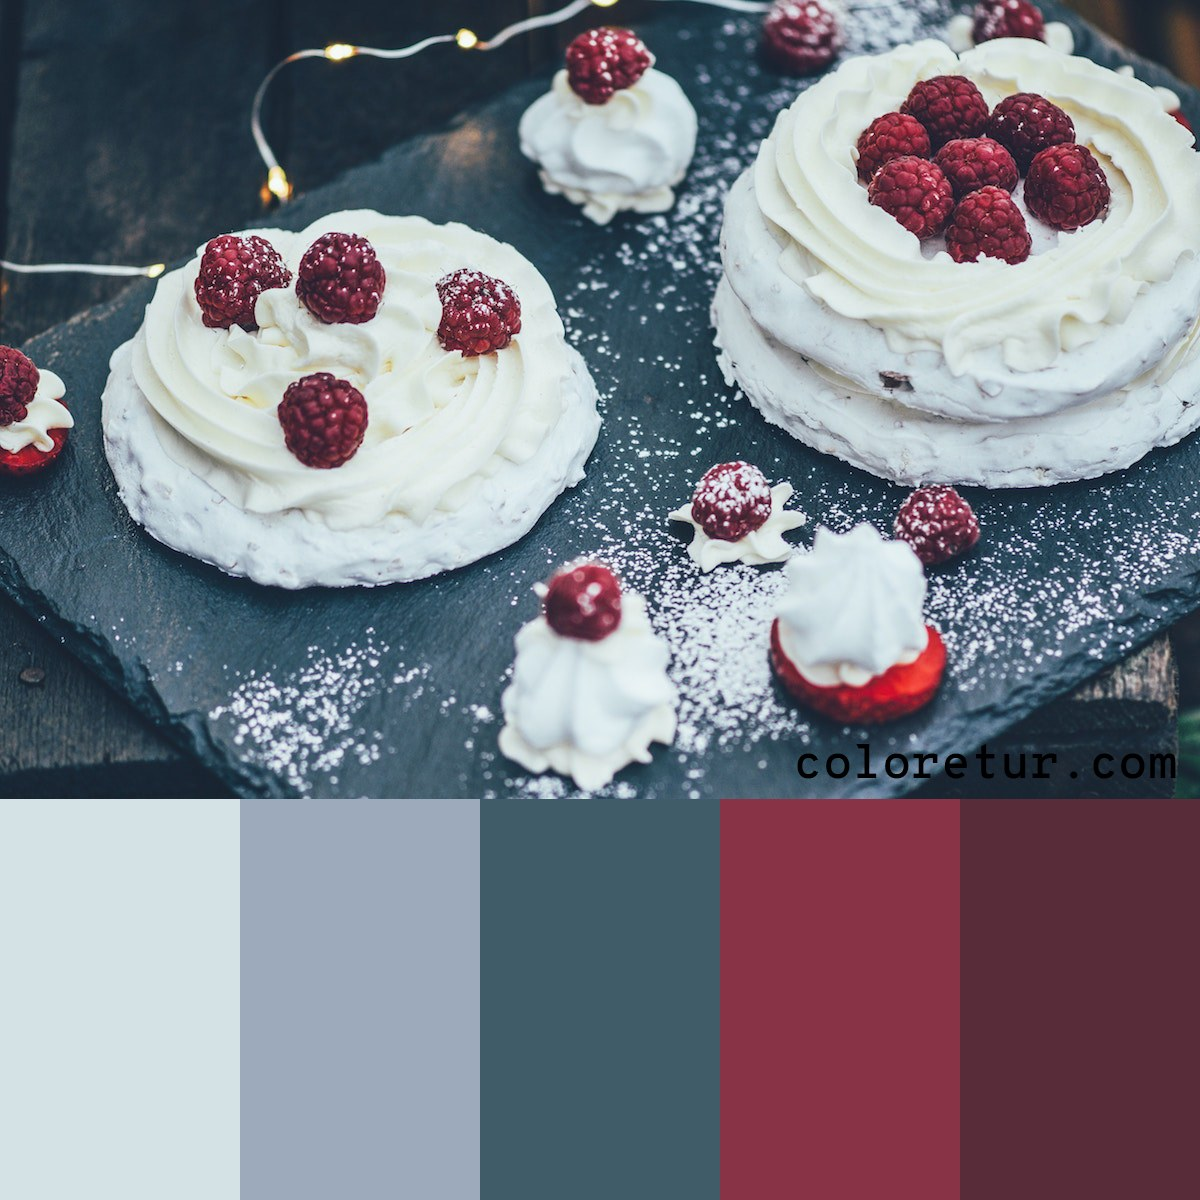 A dark palette from the rich flavors of a pavlova topped with raspberries